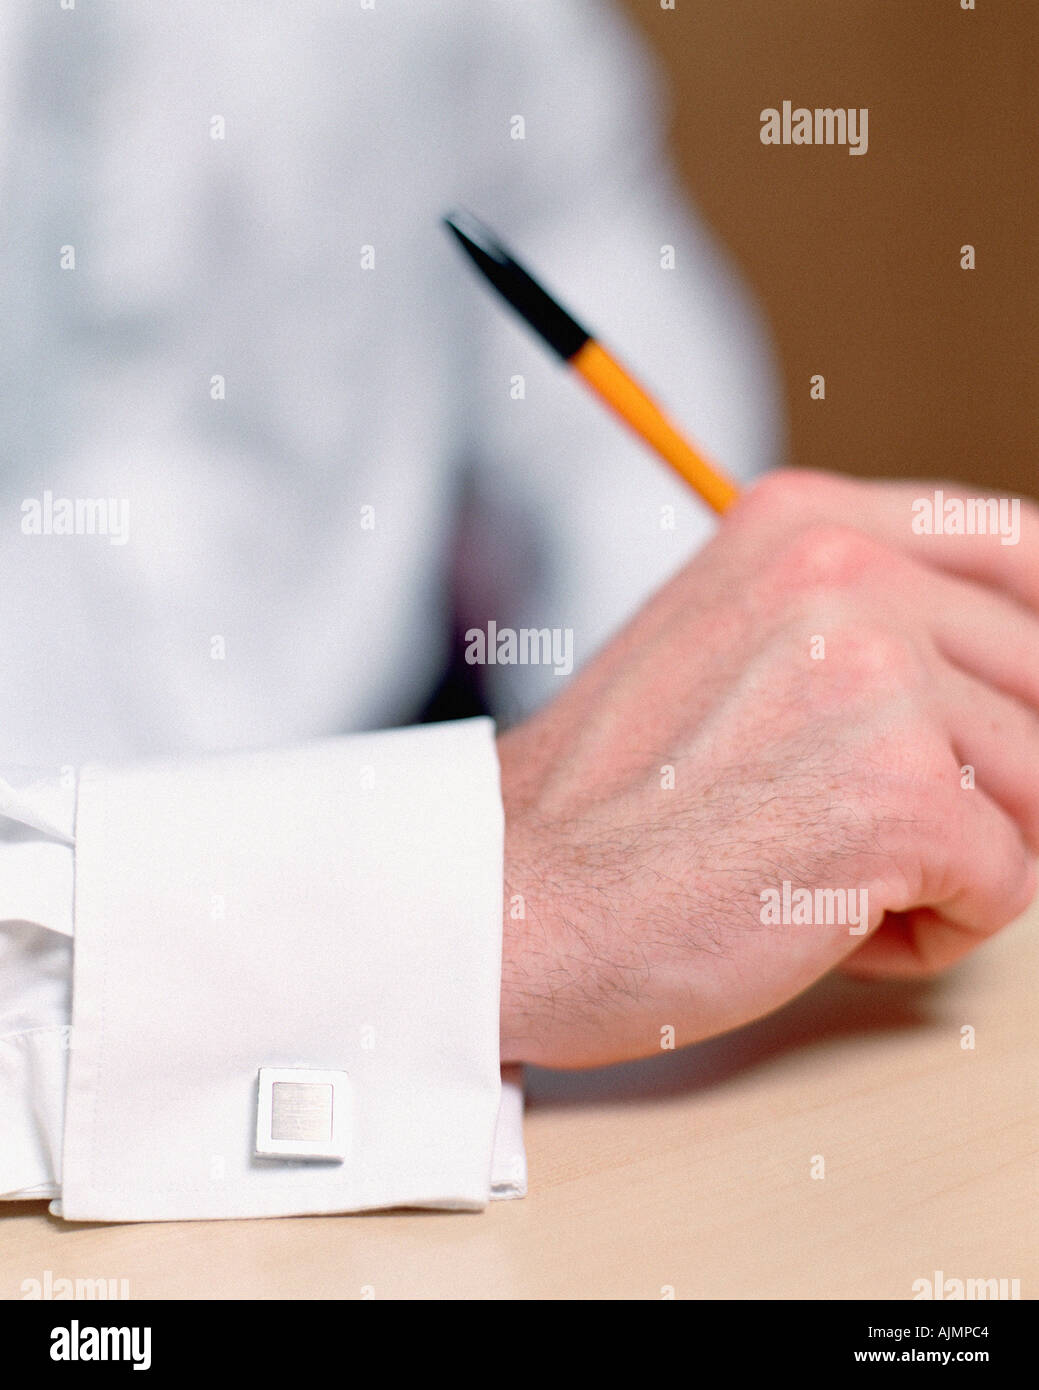 Man wearing a square cuff link - Stock Image